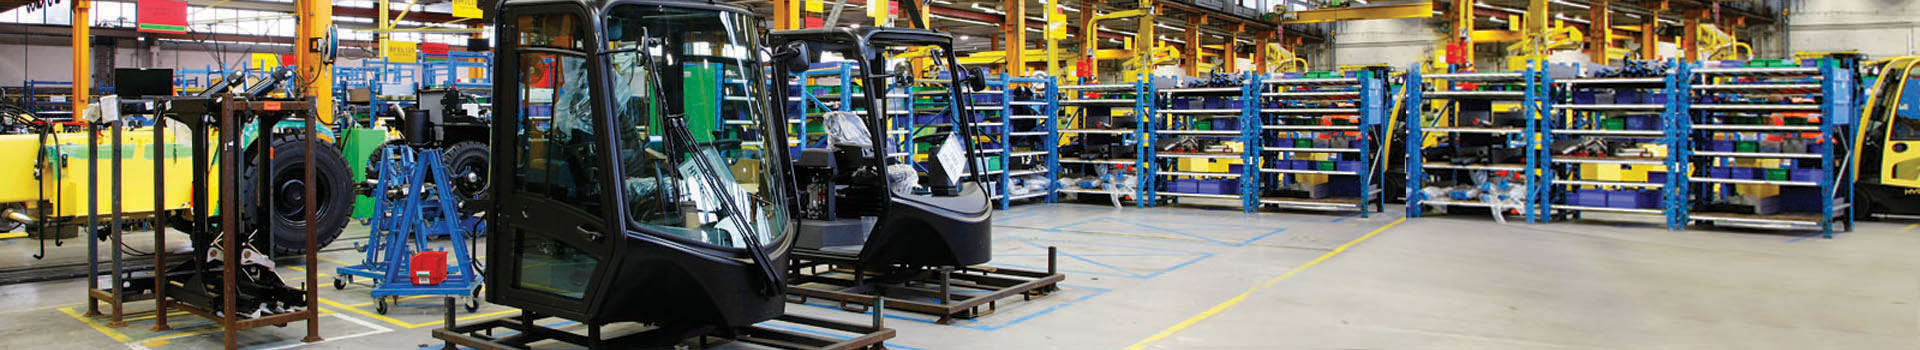 Hyster-Yale Materials Handling, Inc , News Room - News Releases